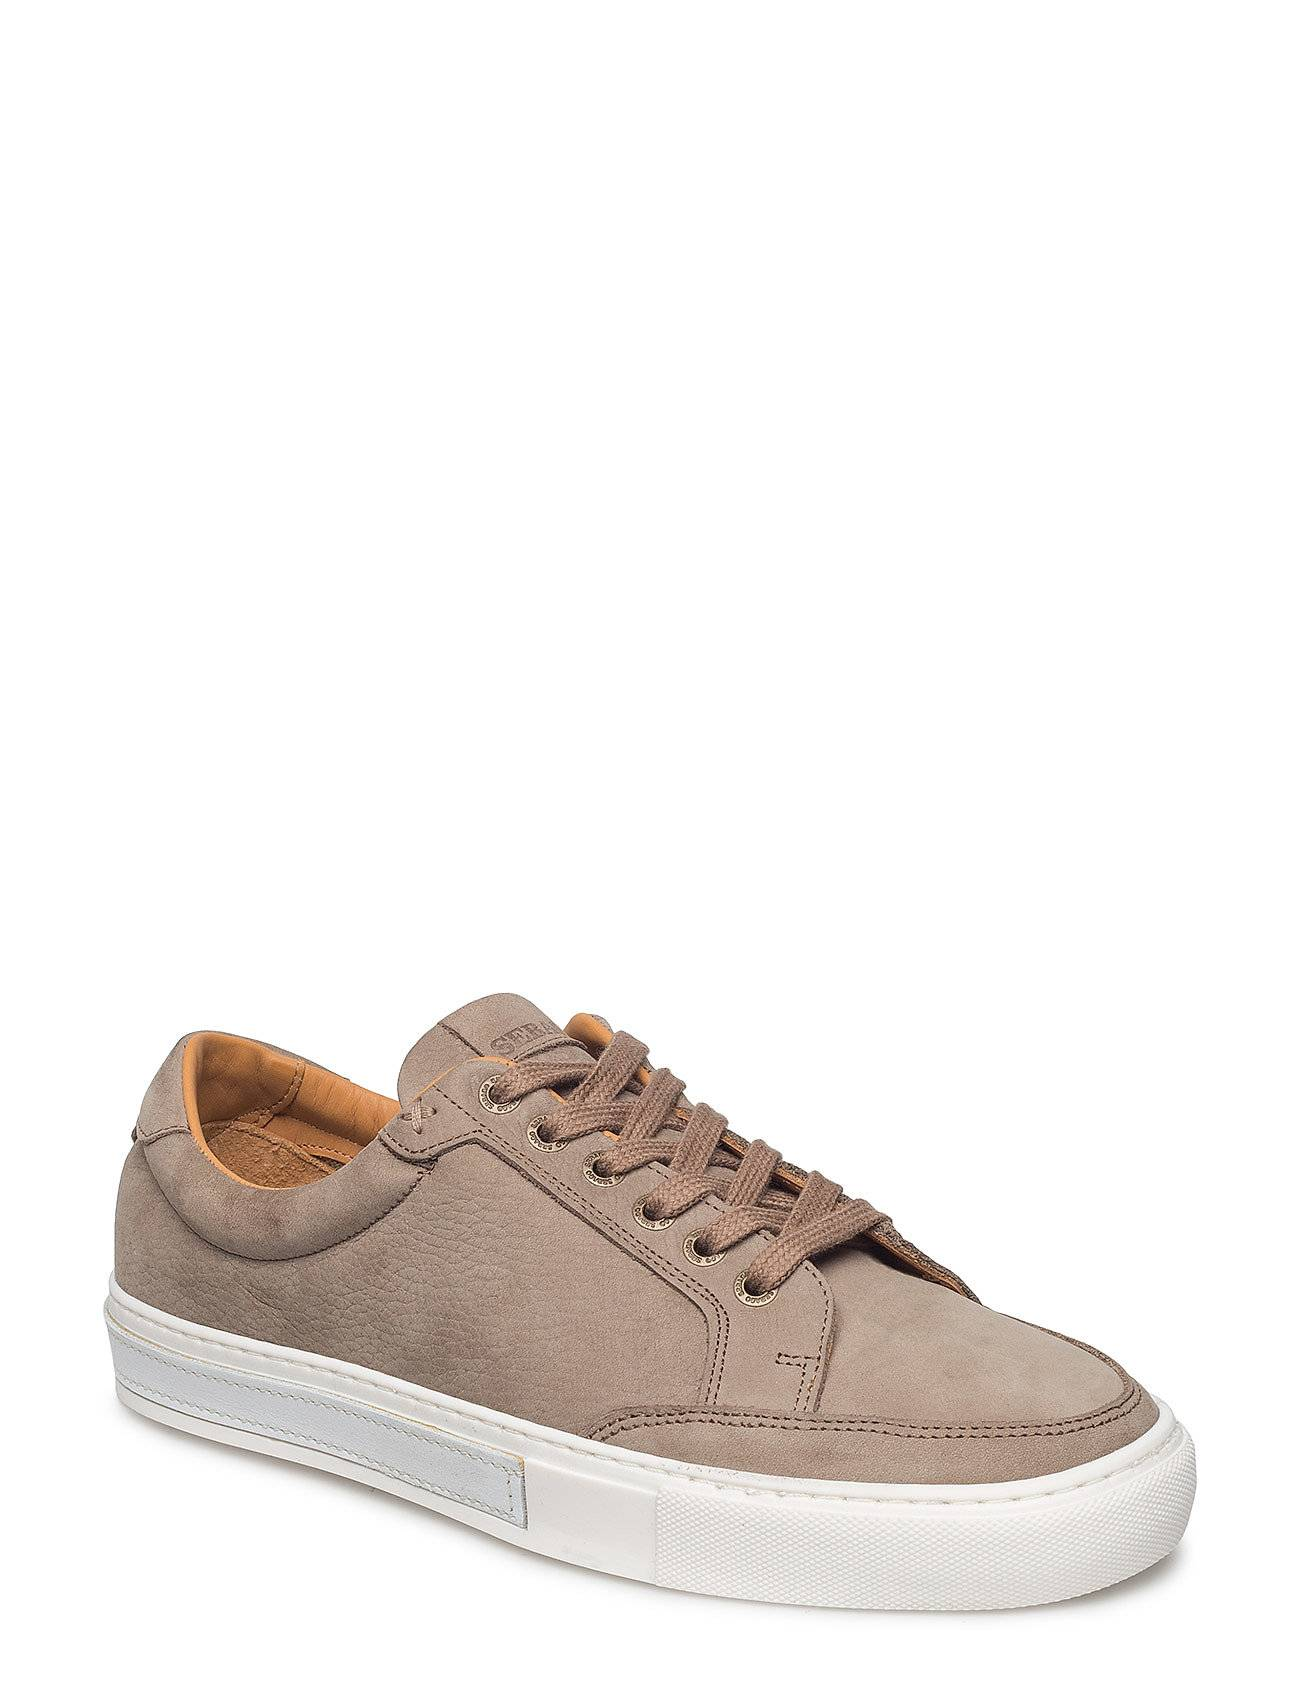 Sebago Robinson Lace Up